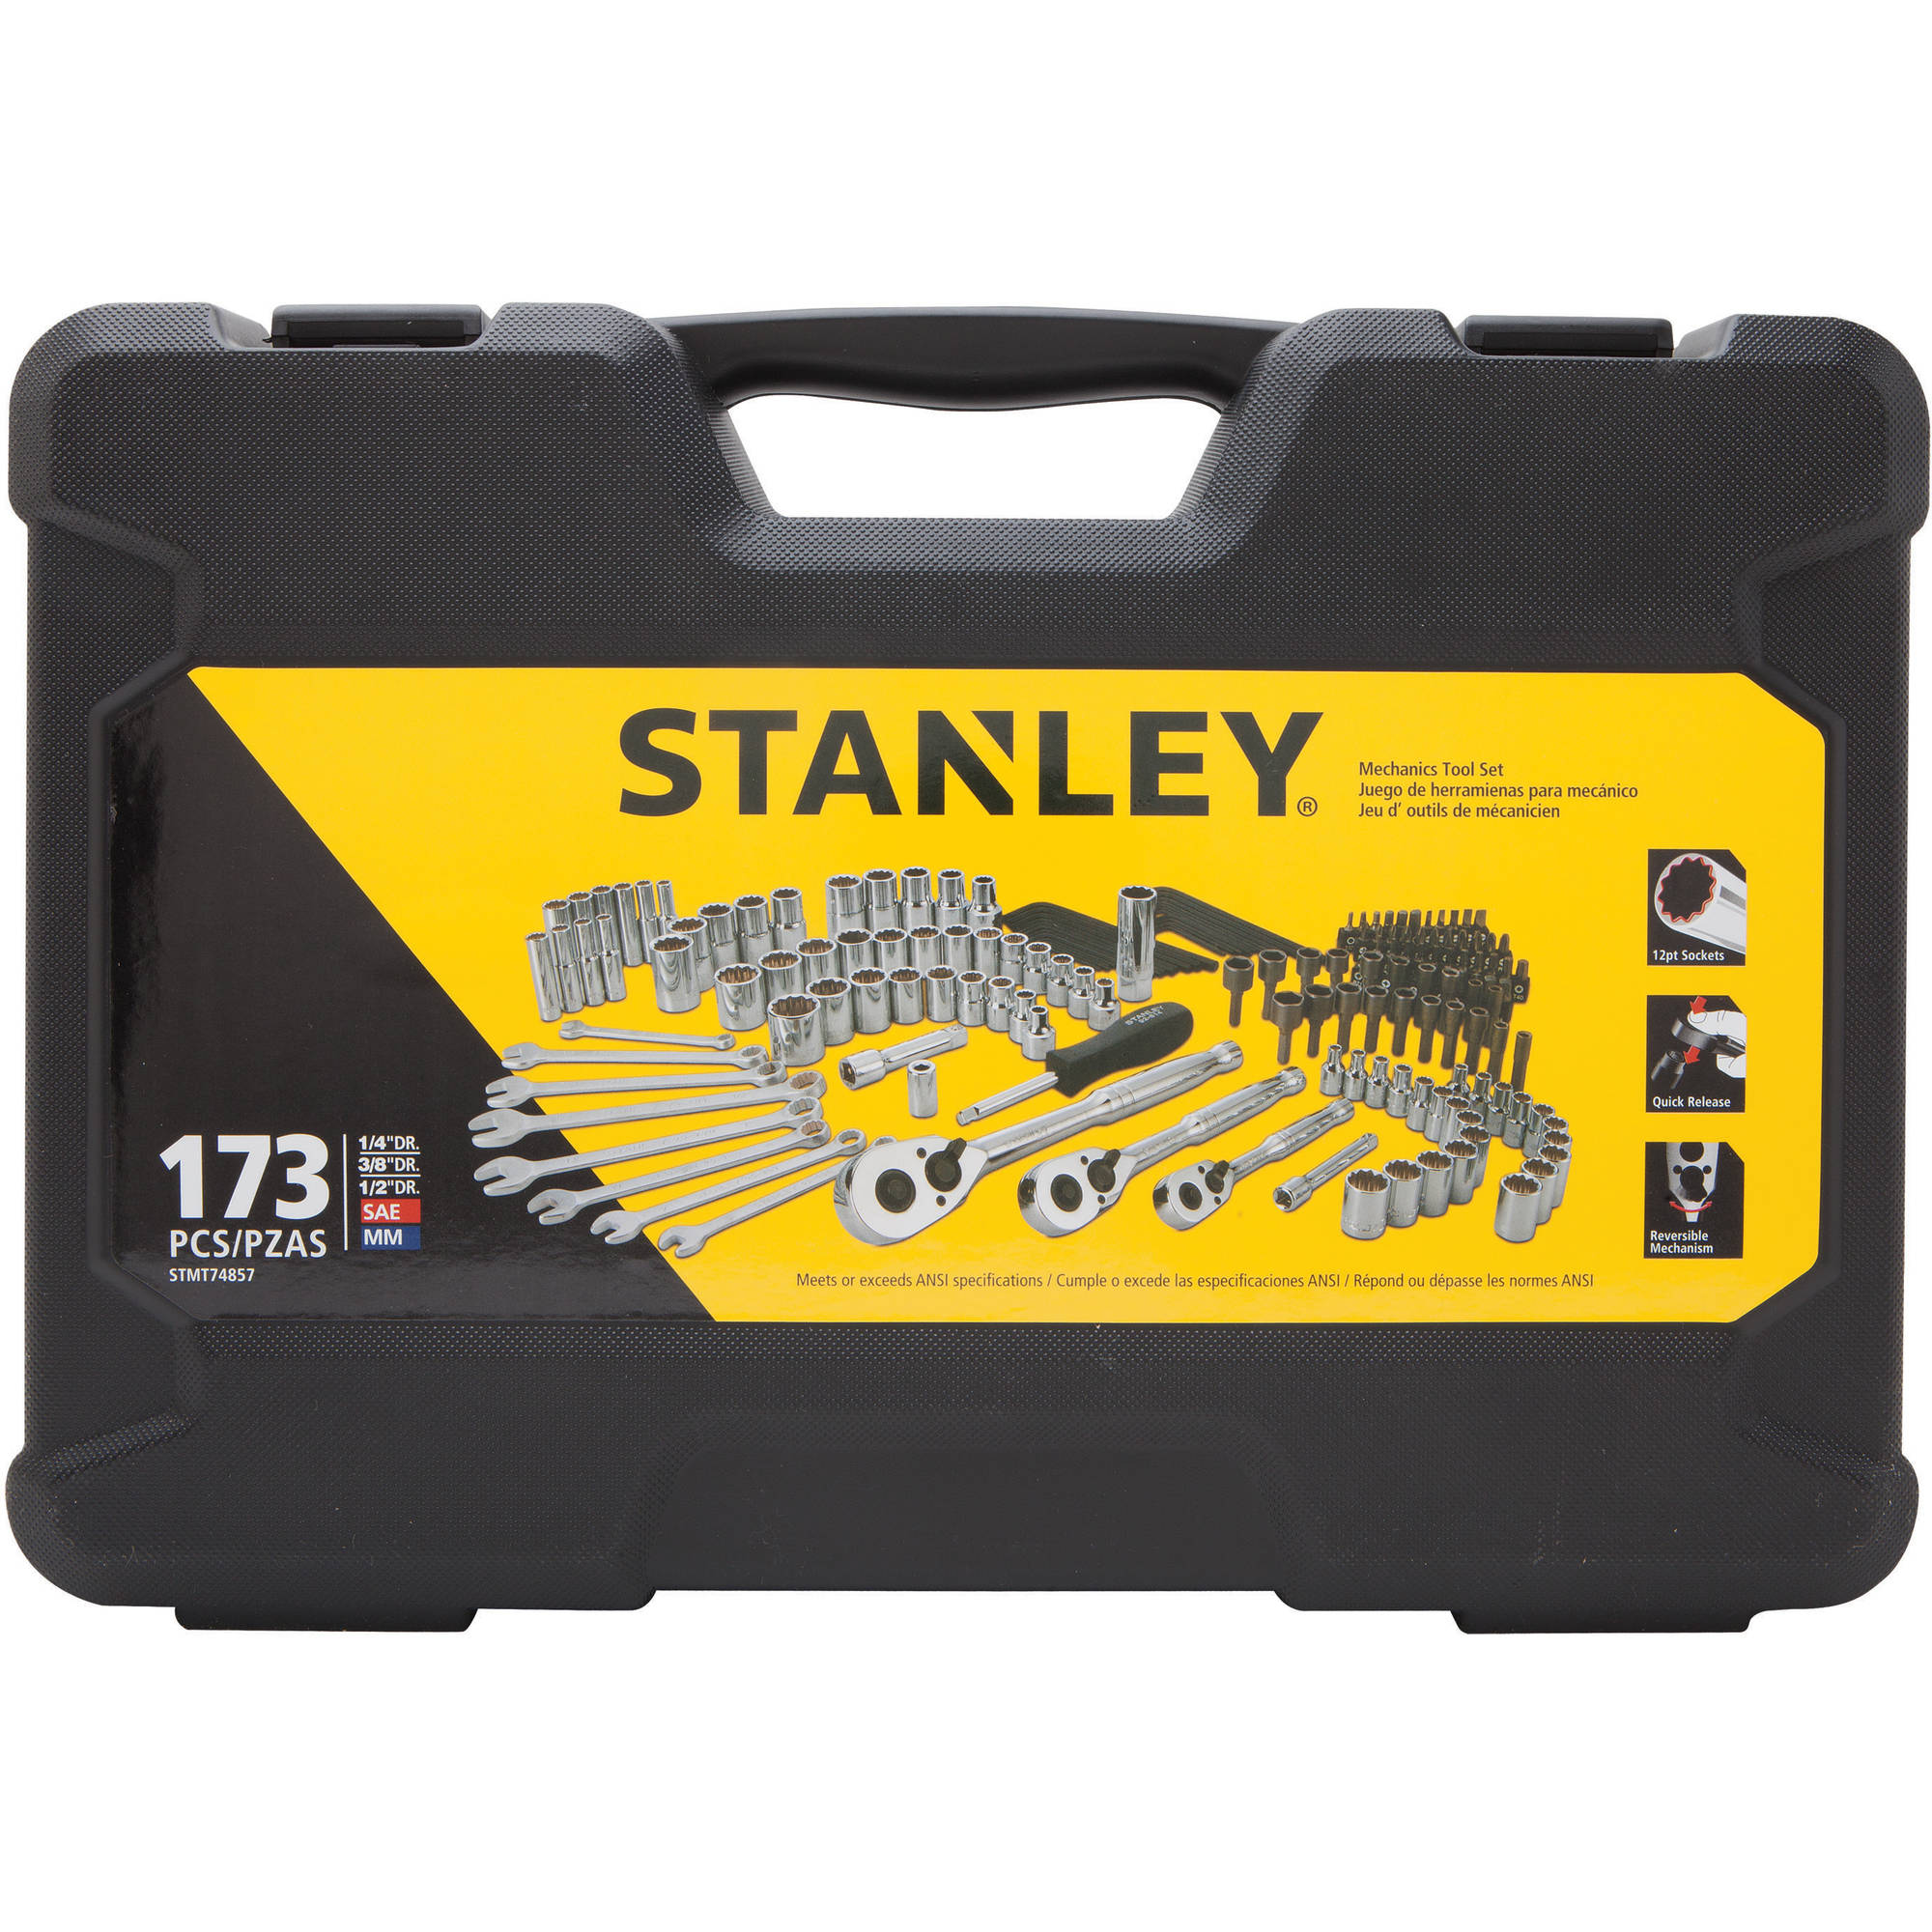 STANLEY 173-Piece Mechanics Tool Set | STMT74857 by Stanley Black & Decker